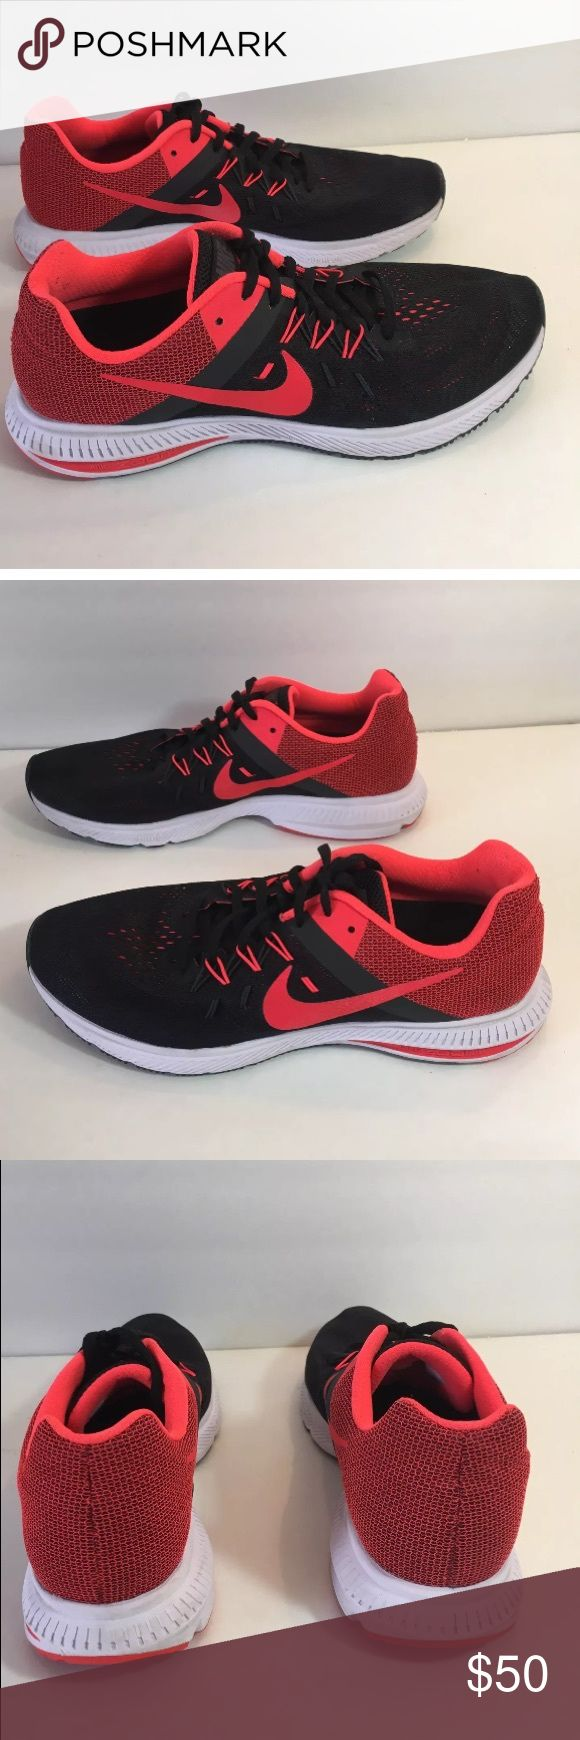 Men's Nike Training shoes size 10.5 Red and Black Nike men's size 10.5. Black and red. In excellent condition still! Only worn maybe 10-15 times or so to my local indoor gym. No wear on them. Ships next day. Nike Shoes Athletic Shoes